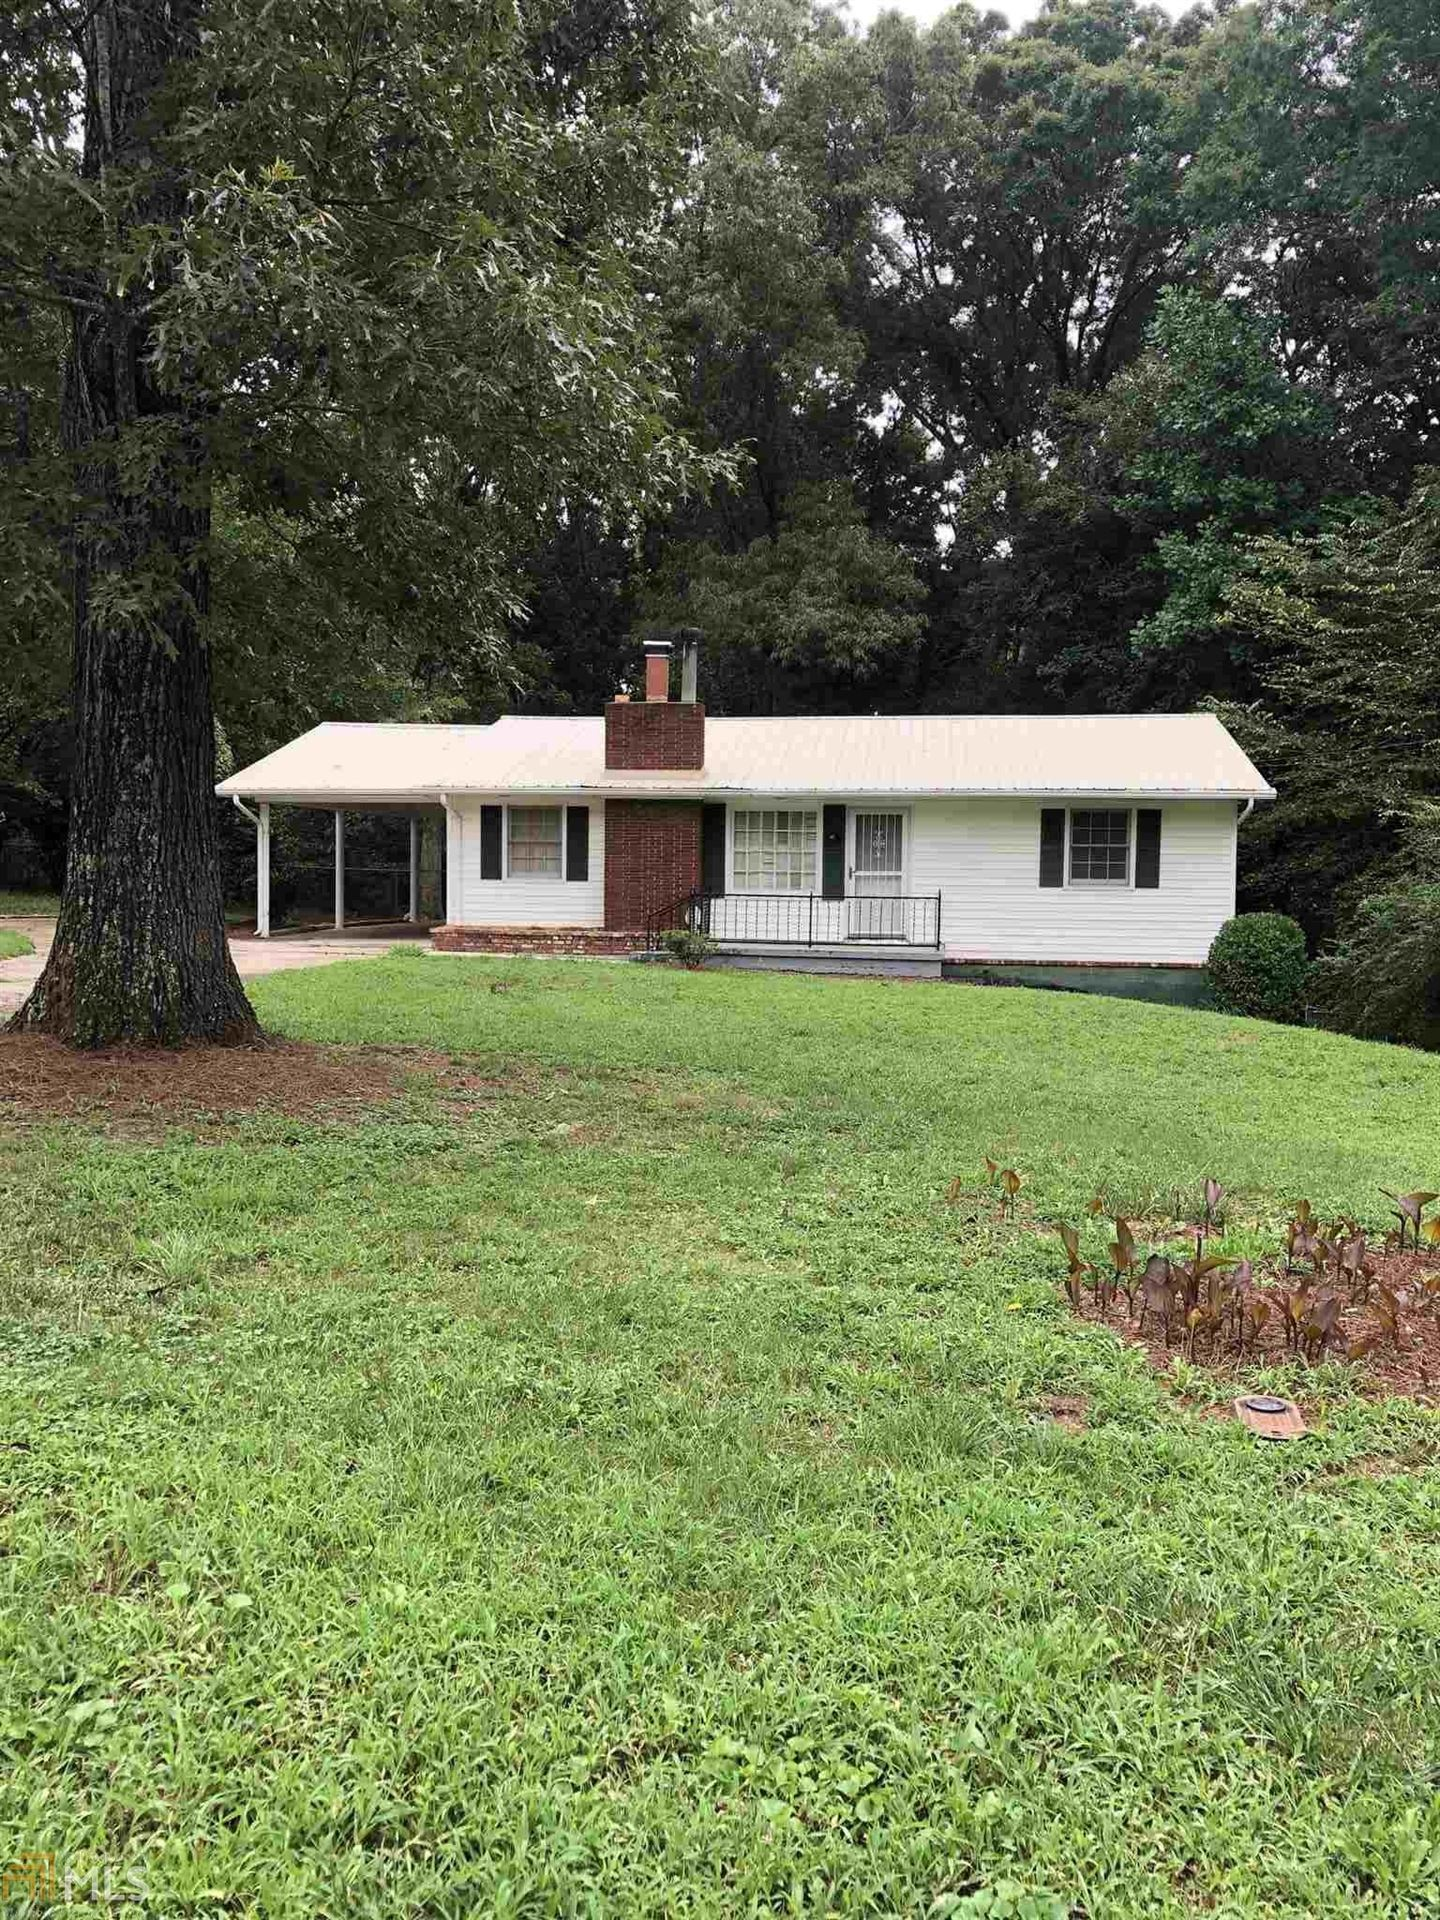 102 Wildwood Cir, Gainesville, GA 30501 - MLS#: 8847395